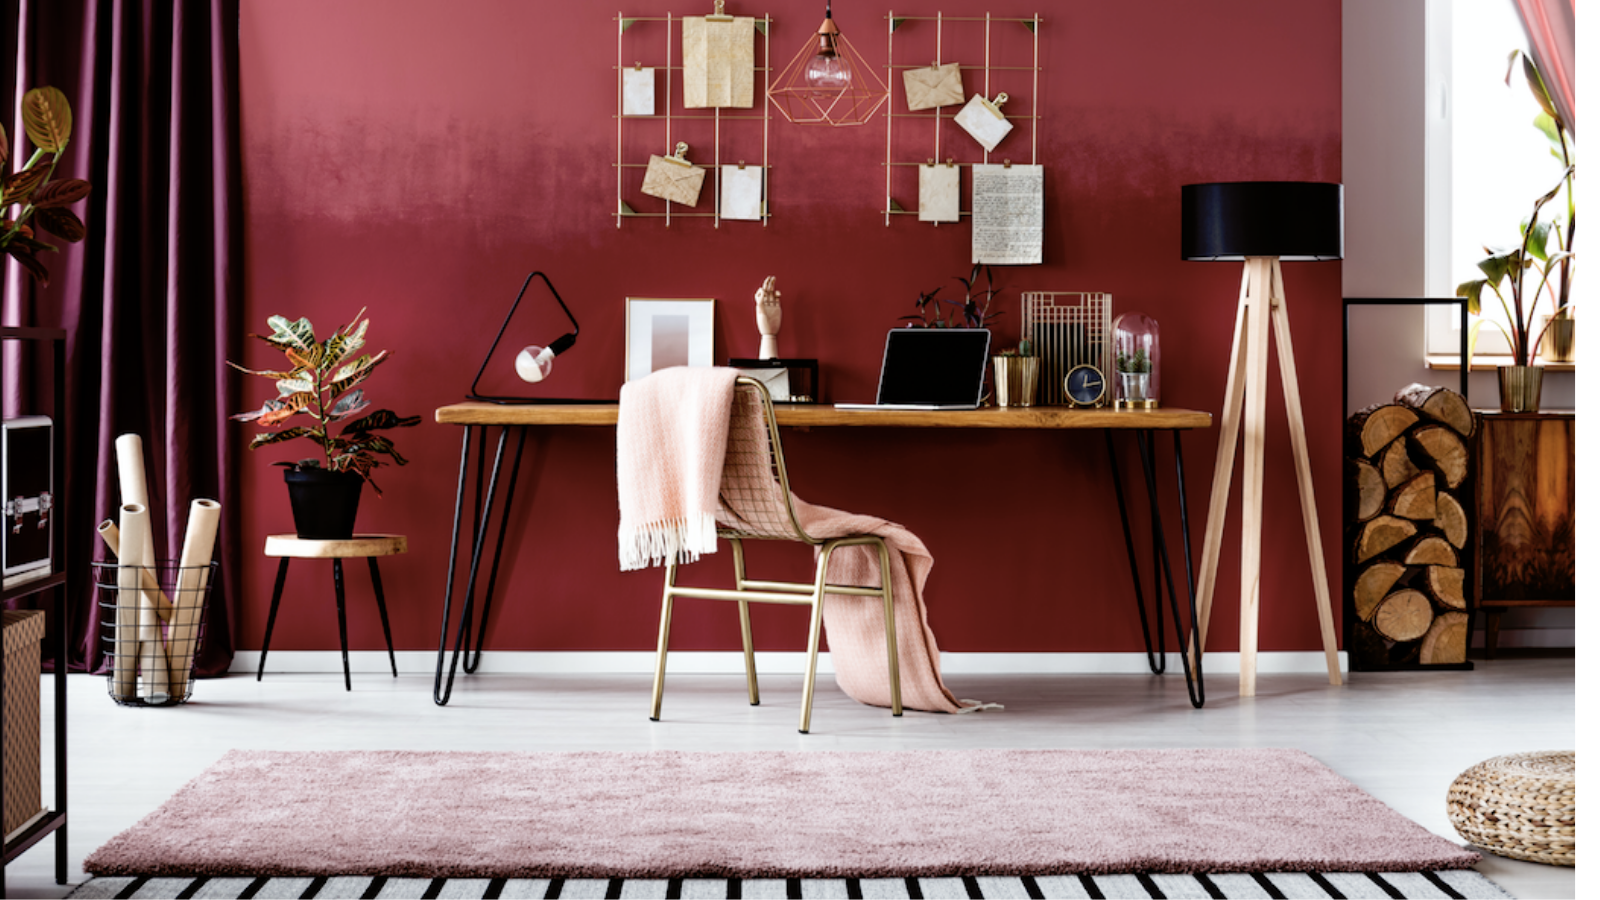 This is what women and men need the most in their home office